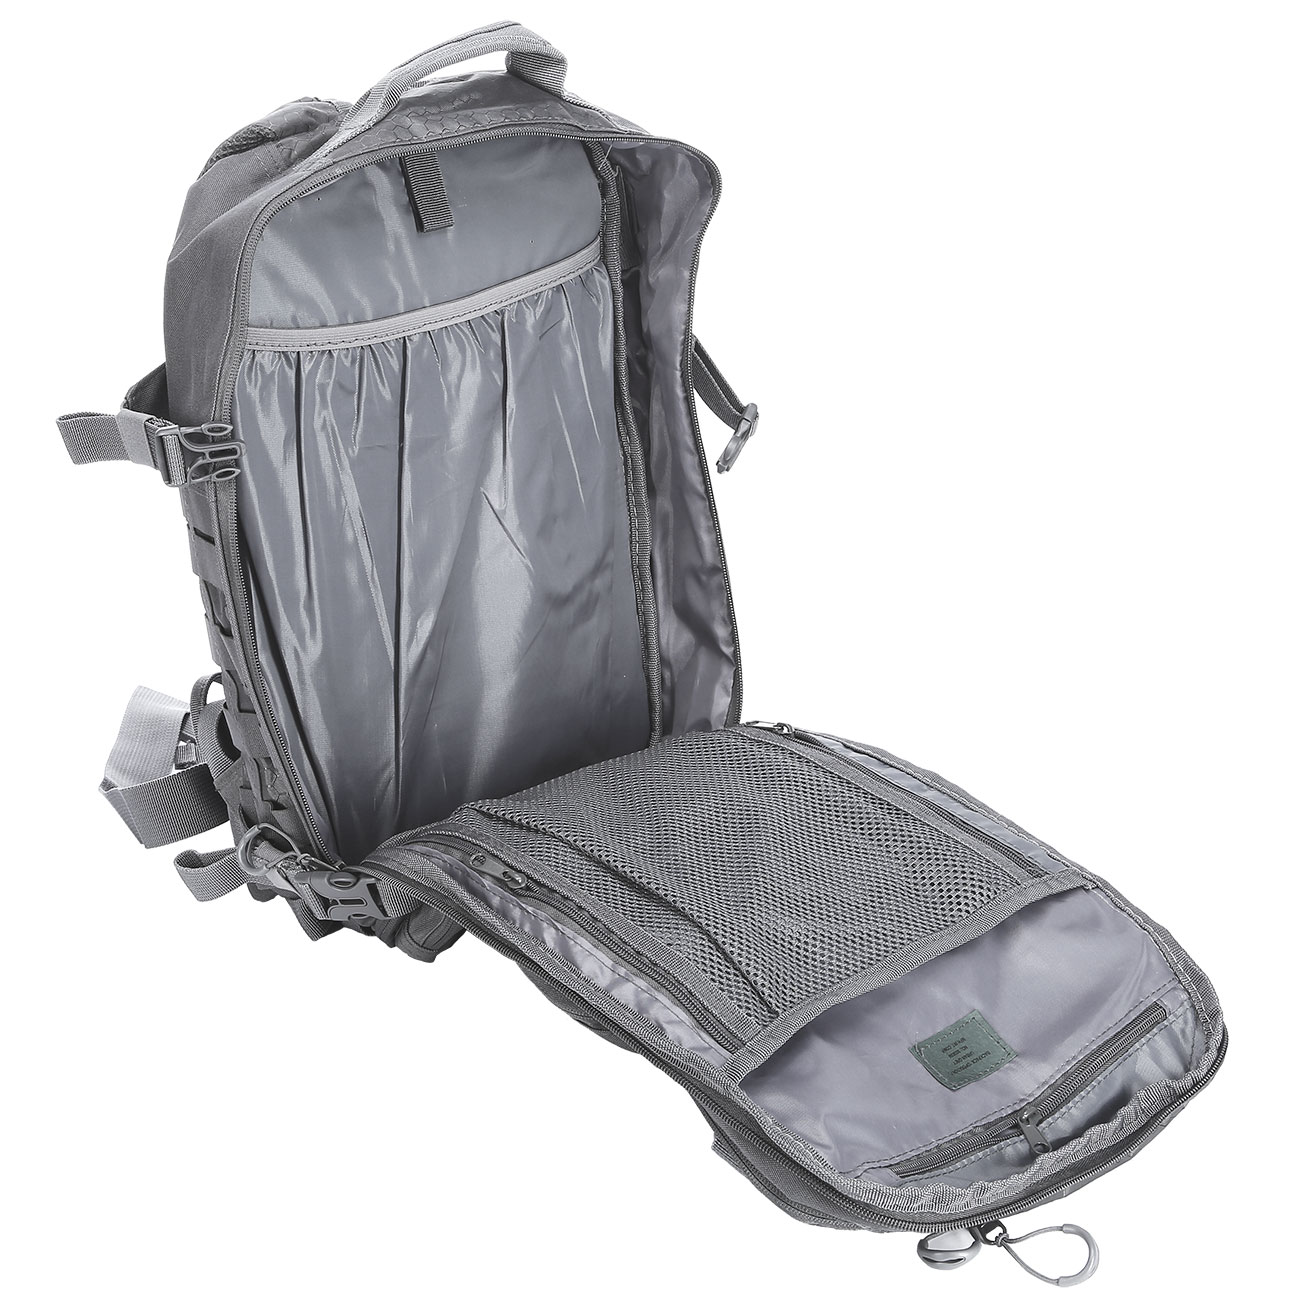 MFH Rucksack Operation I 30 Liter urban grau 6